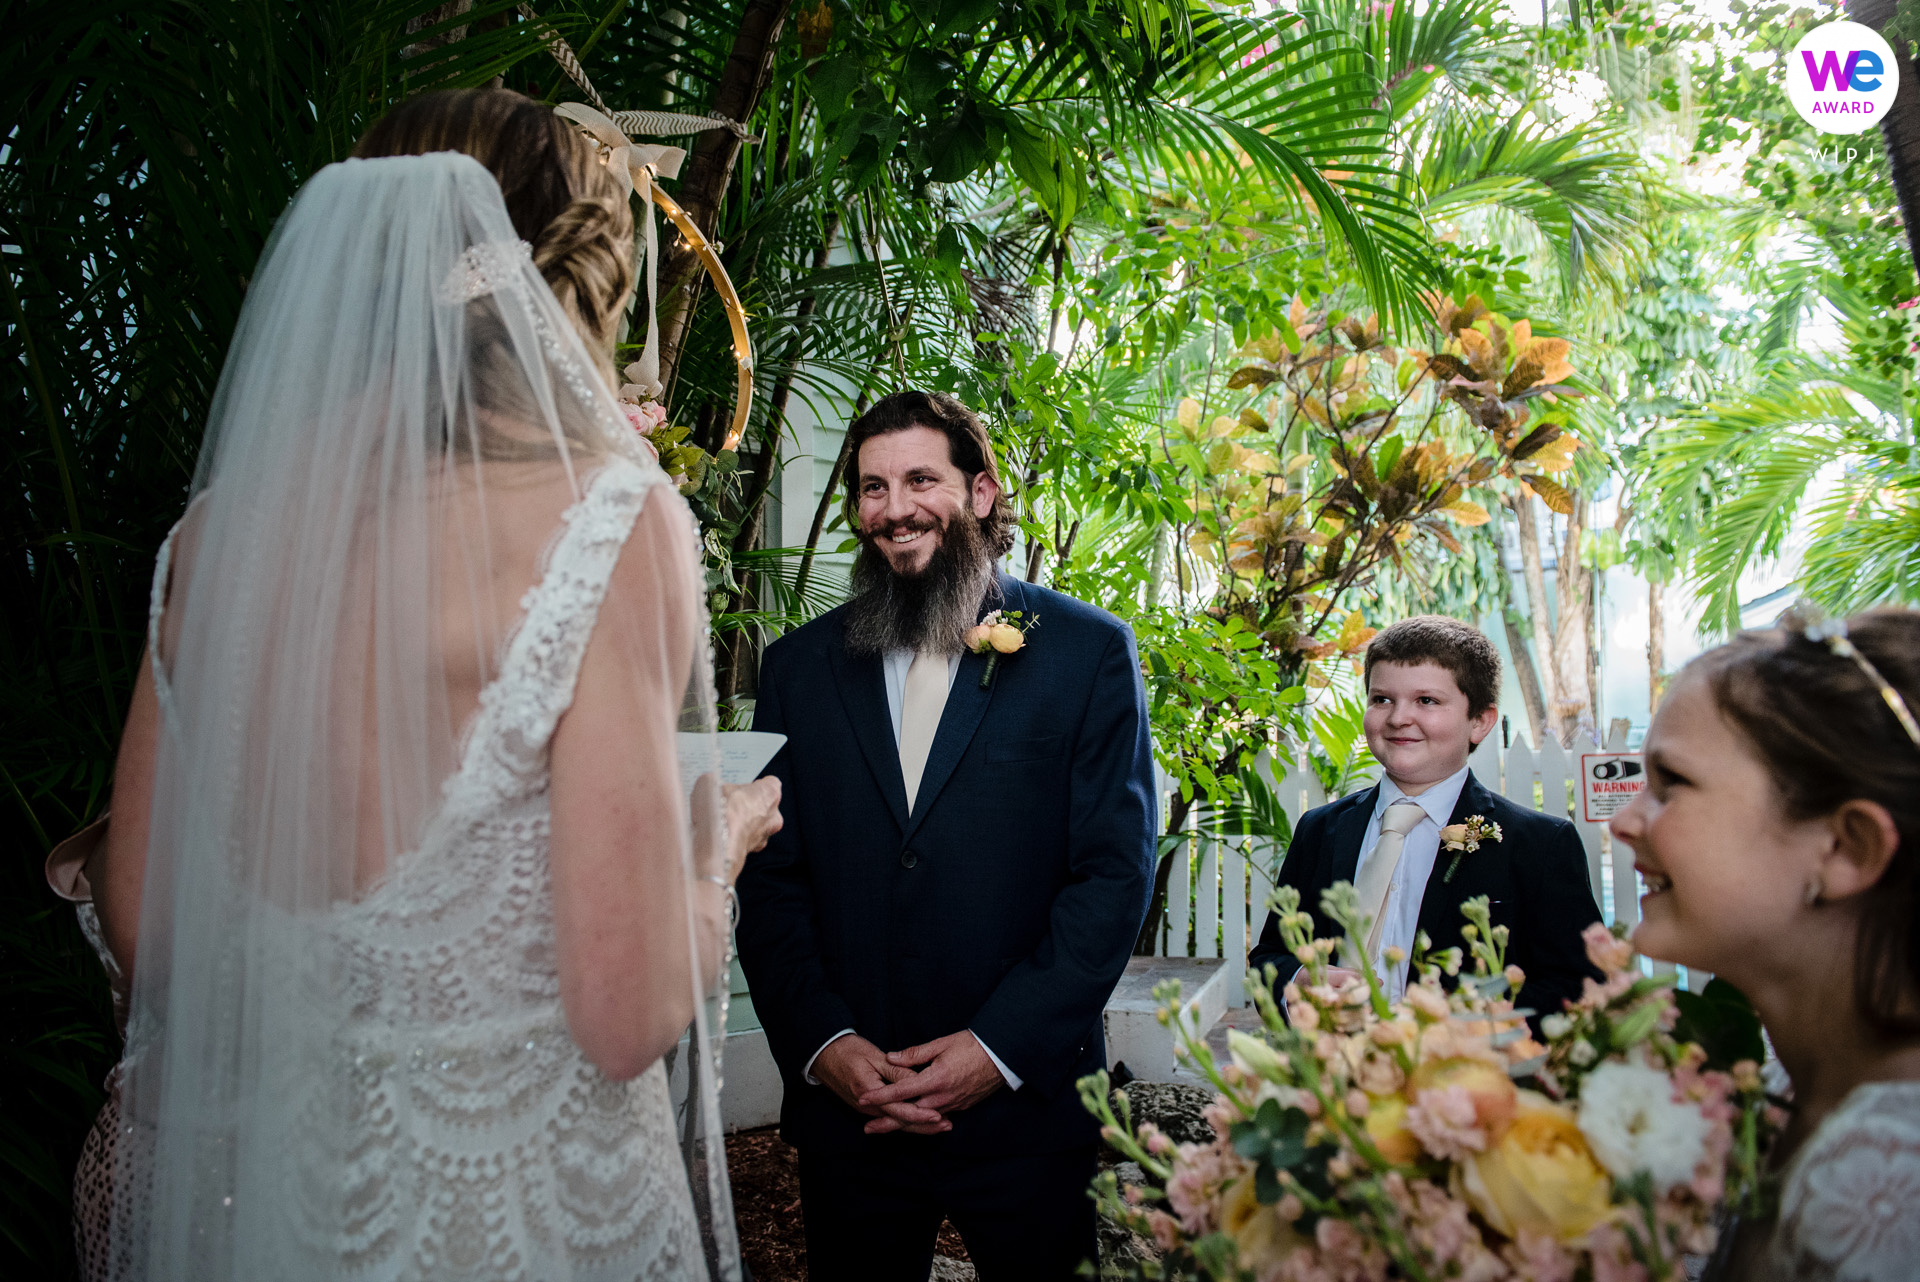 Key West Wedding Photography at Old Town | The vows, which were loaded with love and a dash of humor